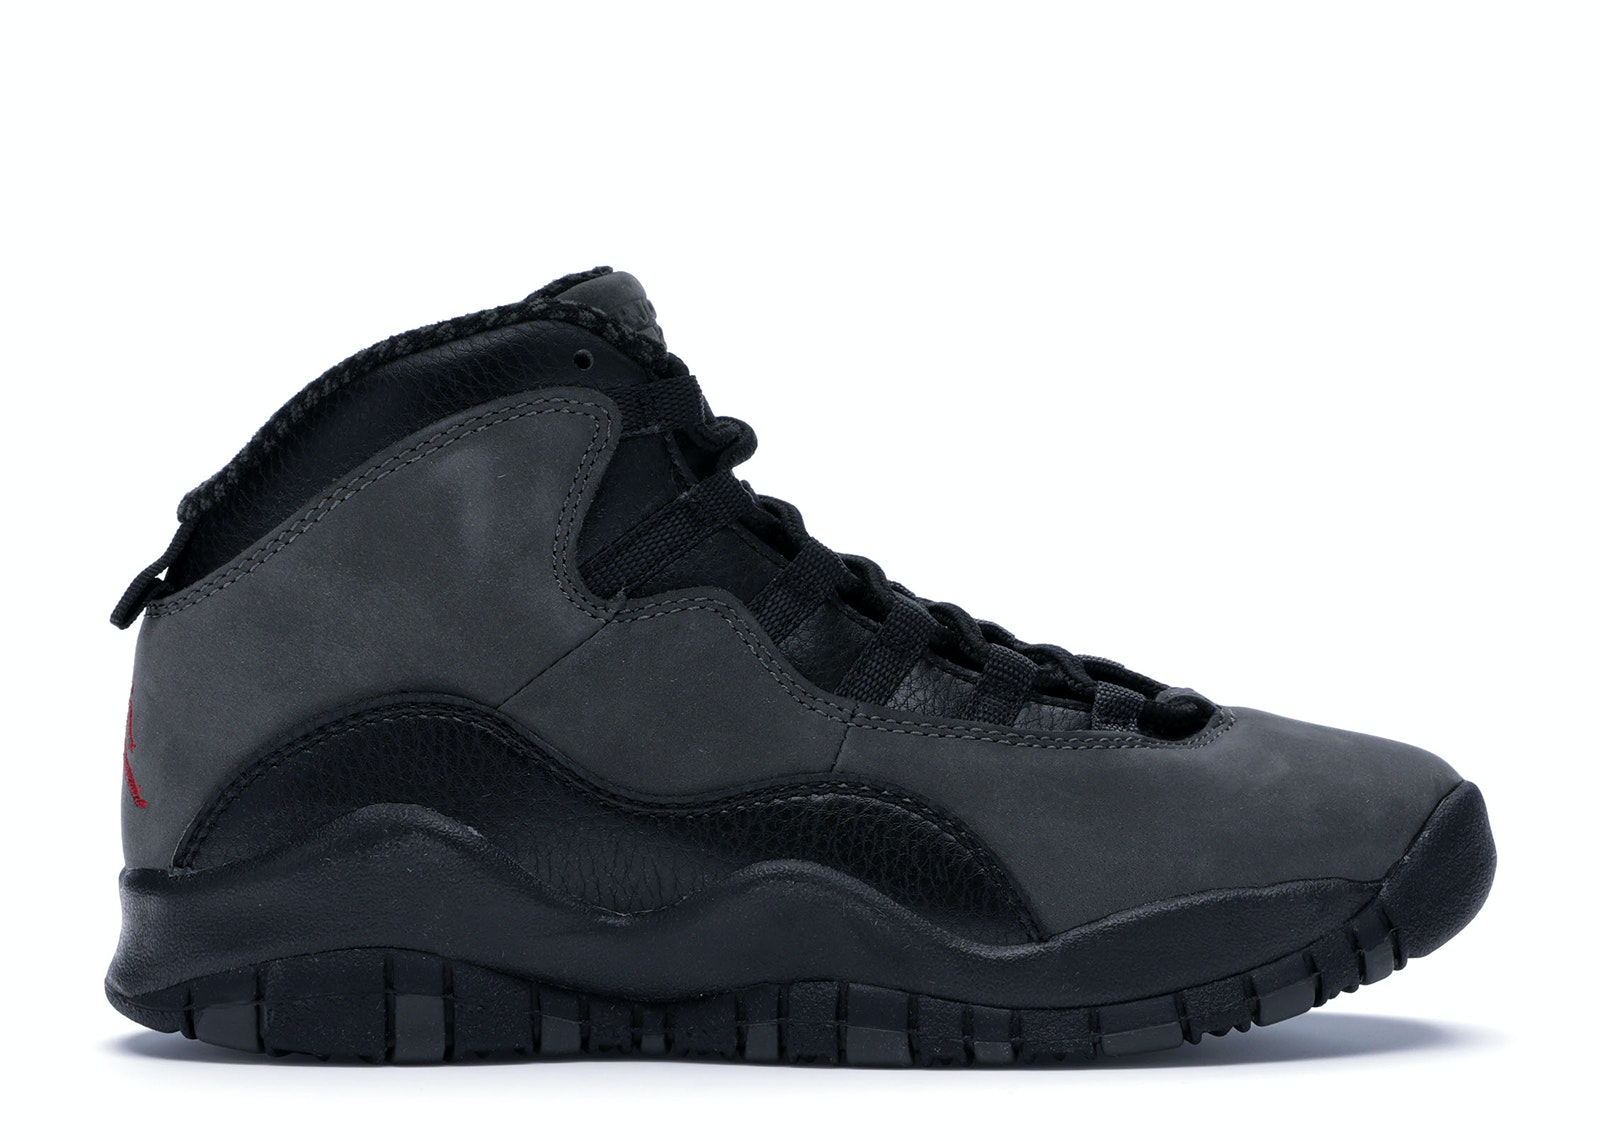 Jordan 10 Retro Shadow 2018 (GS)